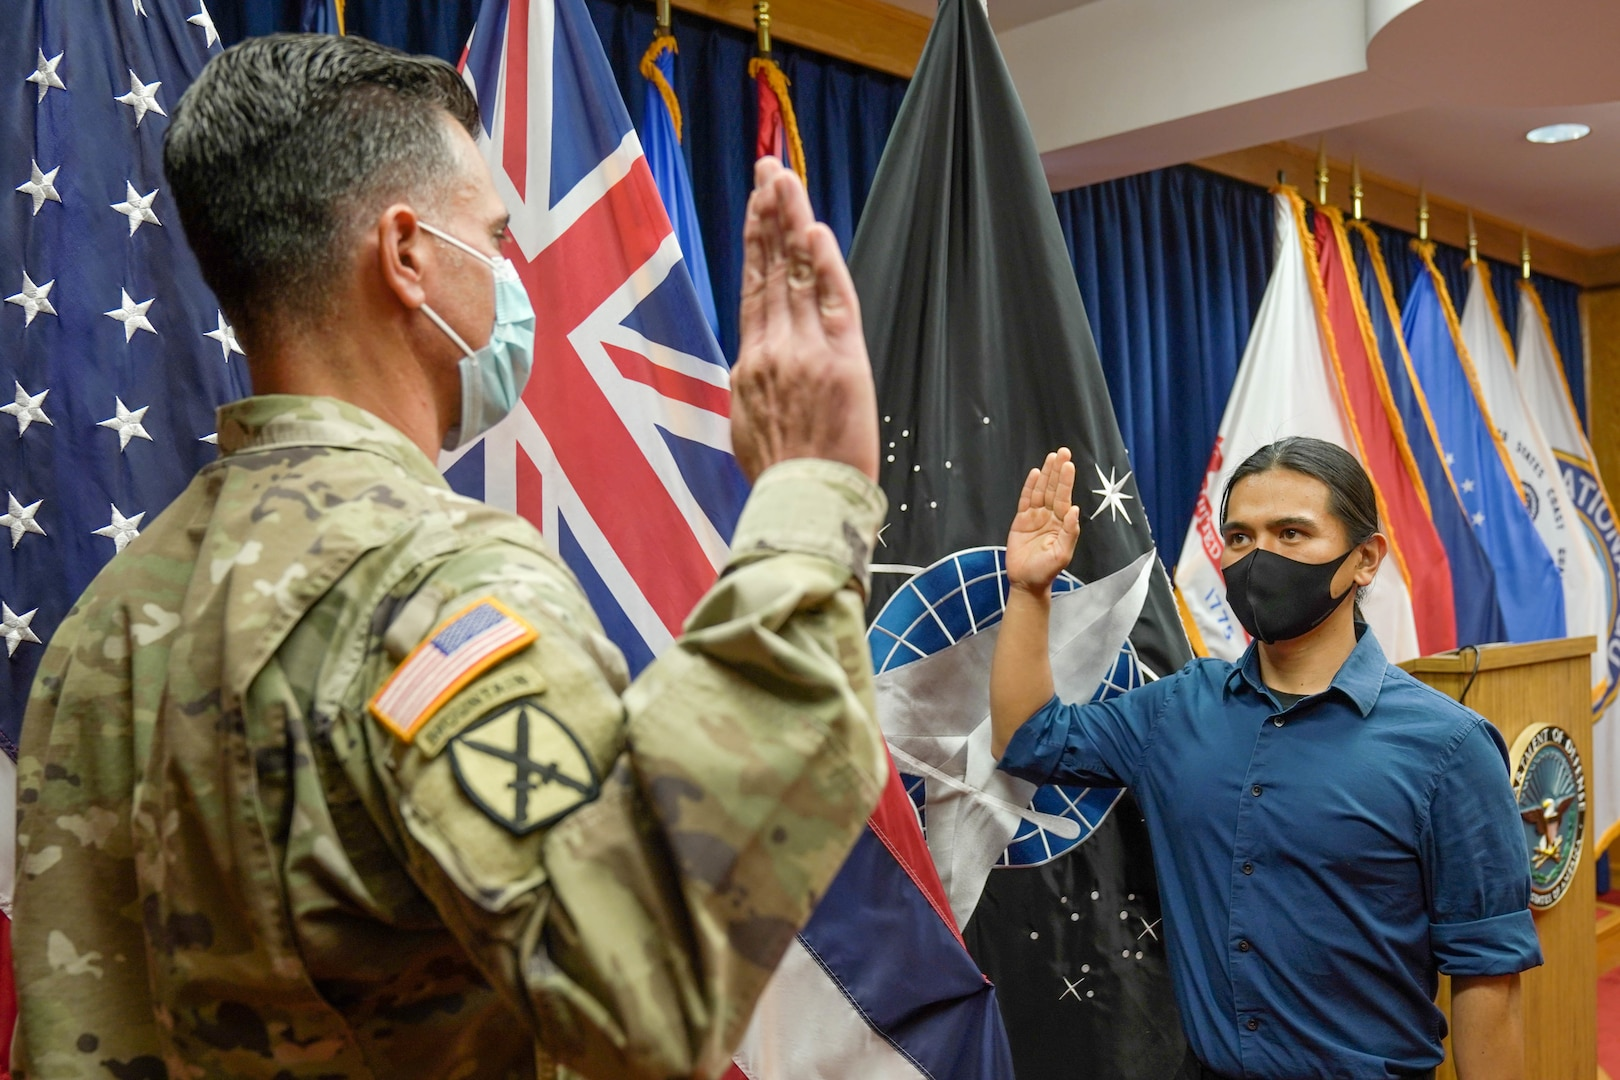 Reyjie Cliff Blando Madriaga, a Hawaiian native, receives the oath of enlistment from U.S. Army Capt. Donald McCoullough, Honolulu Military Entrance Processing Station Officer, as the first Hawaiian U.S. Space Force recruit at Joint Base Pearl Harbor-Hickam, Hawaii, March 4, 2021.